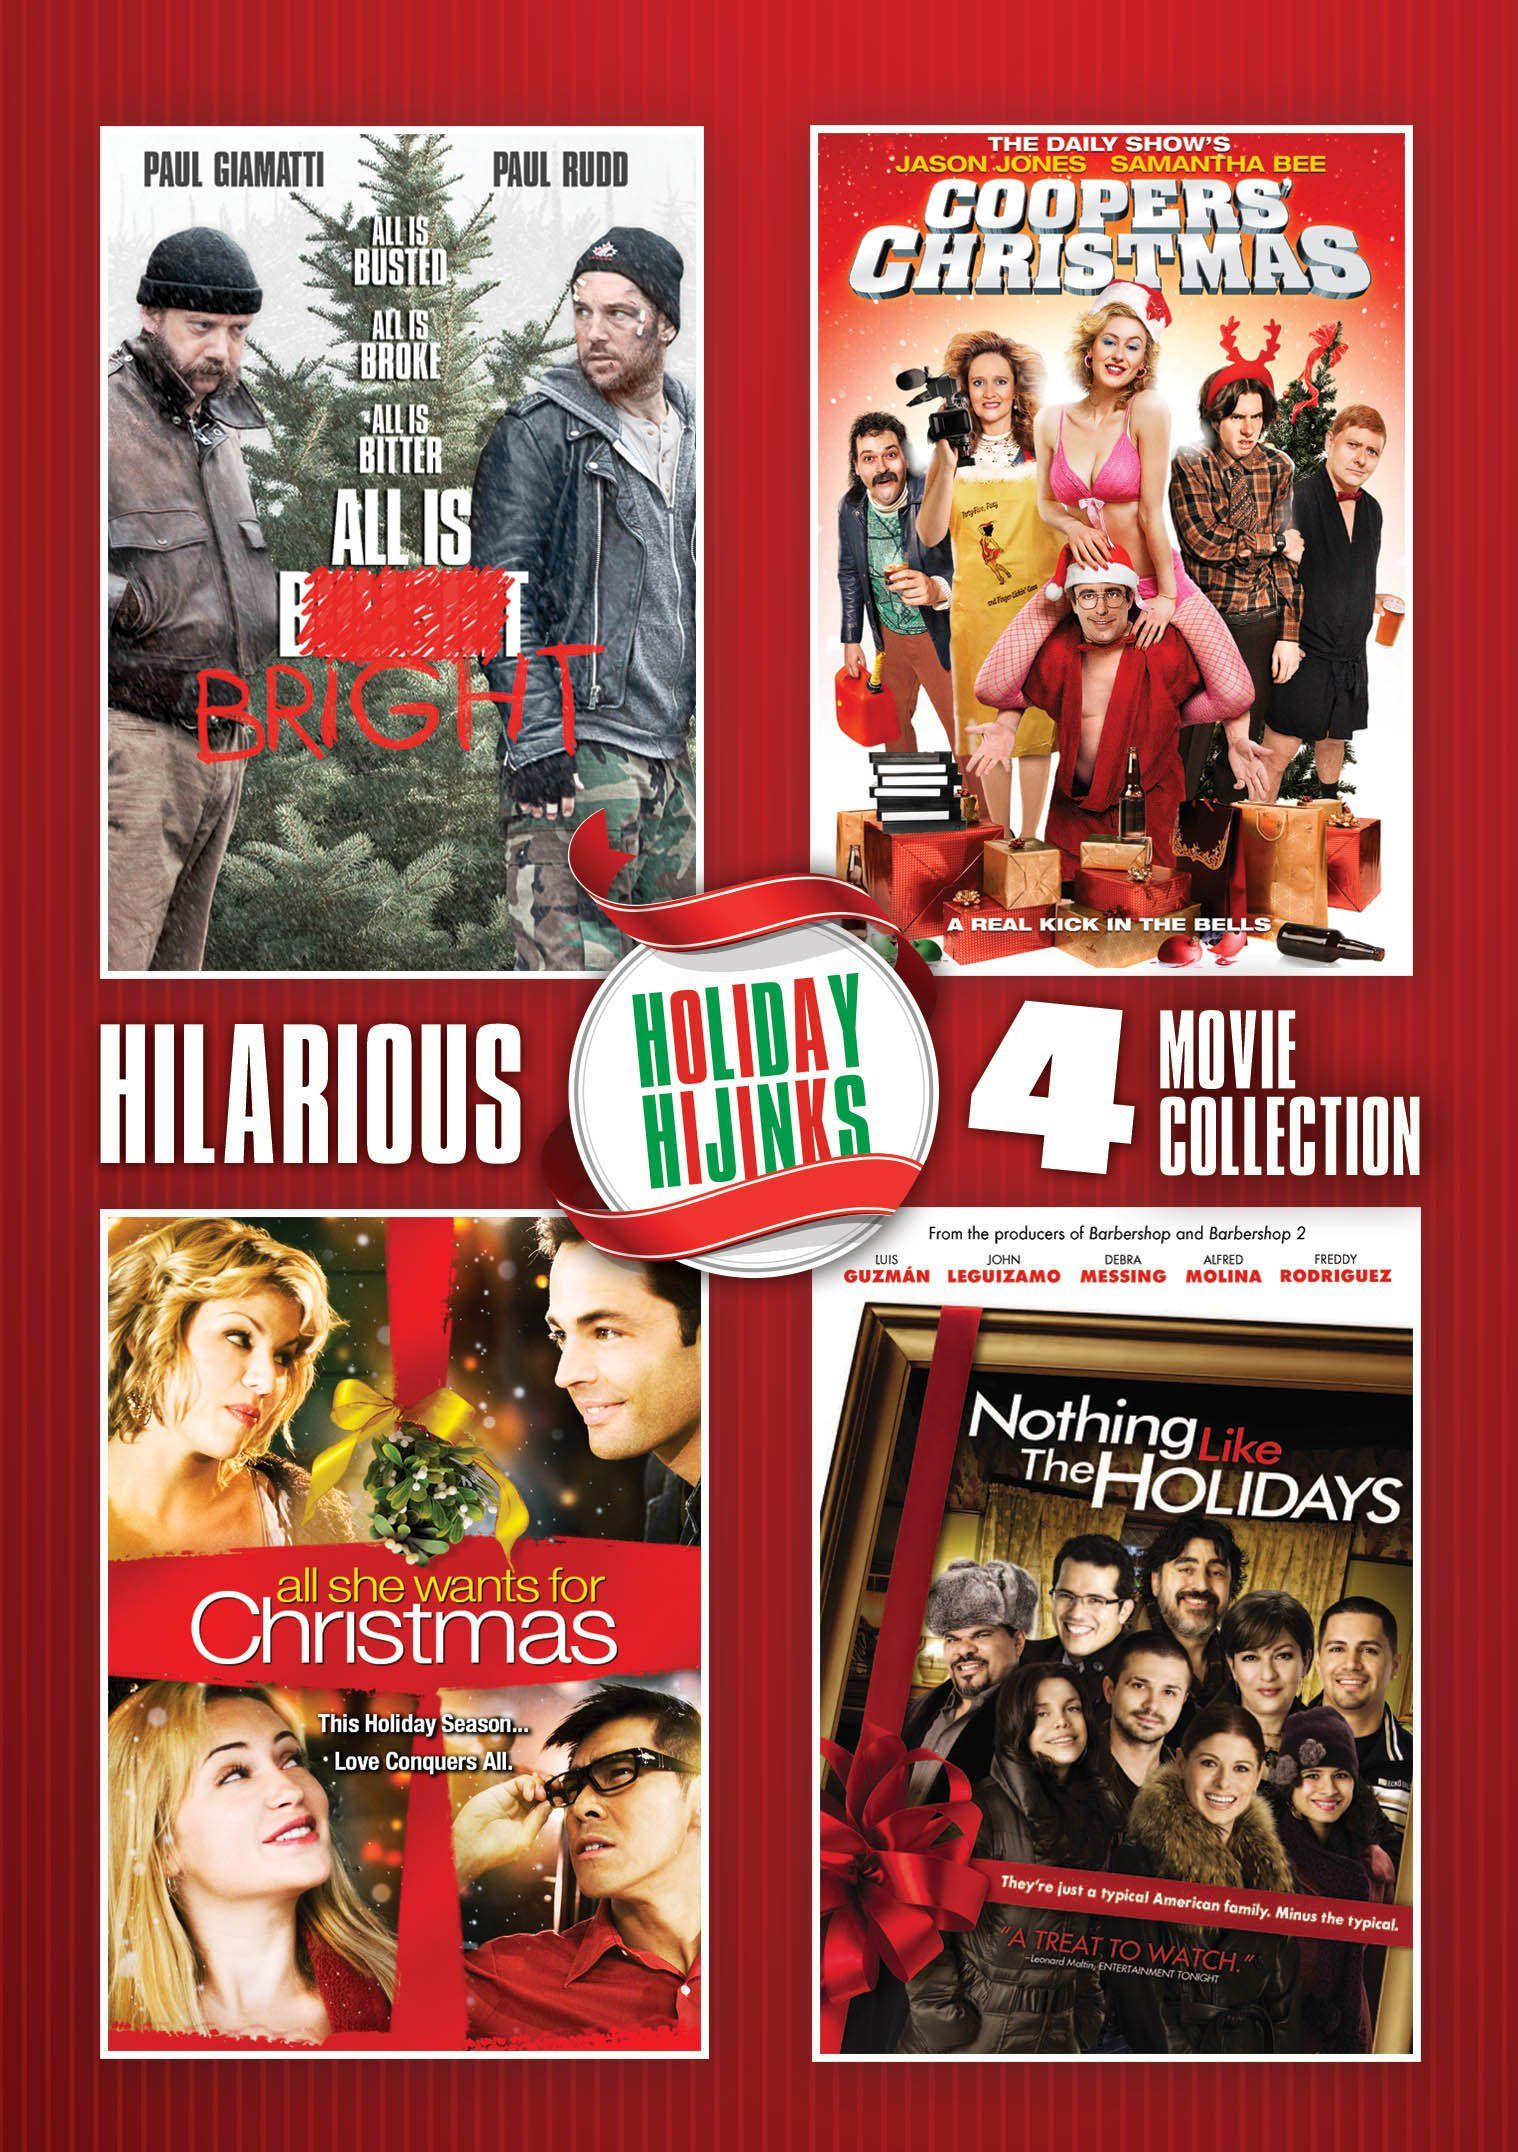 Holiday Hijinks 4-Pack | November 4th, 2014 DVD/Blu-ray Releases ...